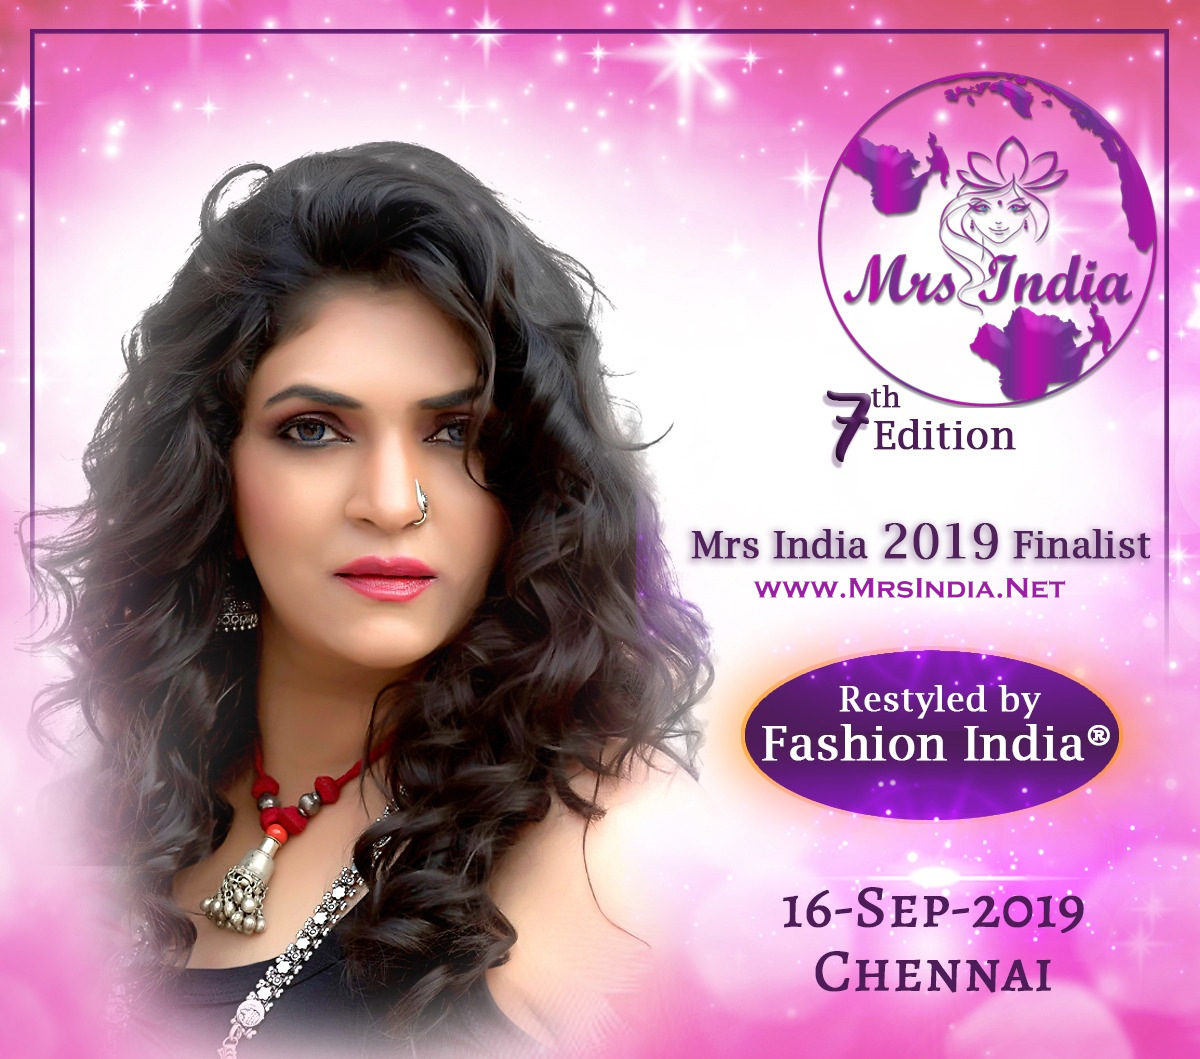 Mrs India 2020 2122 Winner Finalist 19